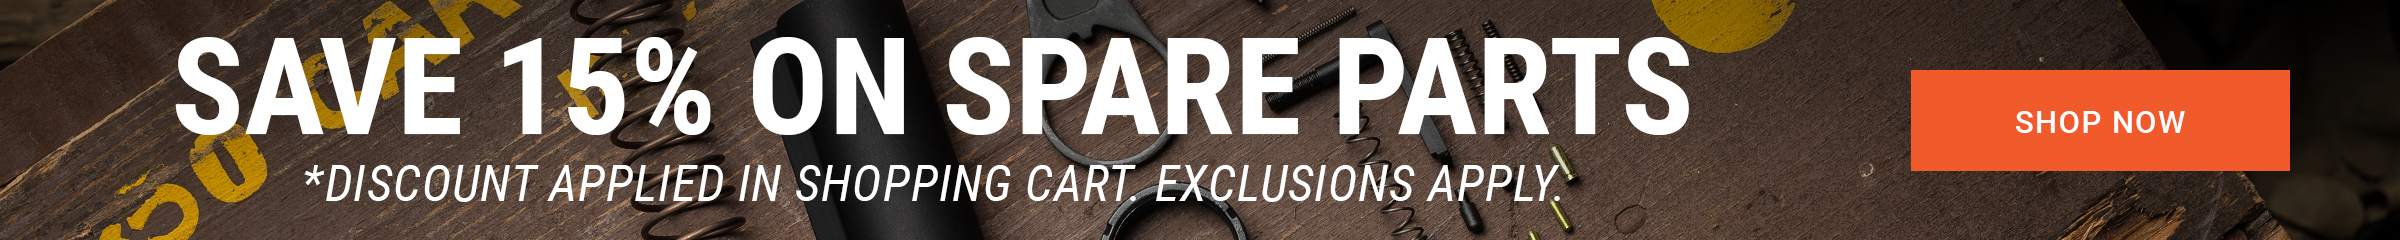 Save on Spare Parts